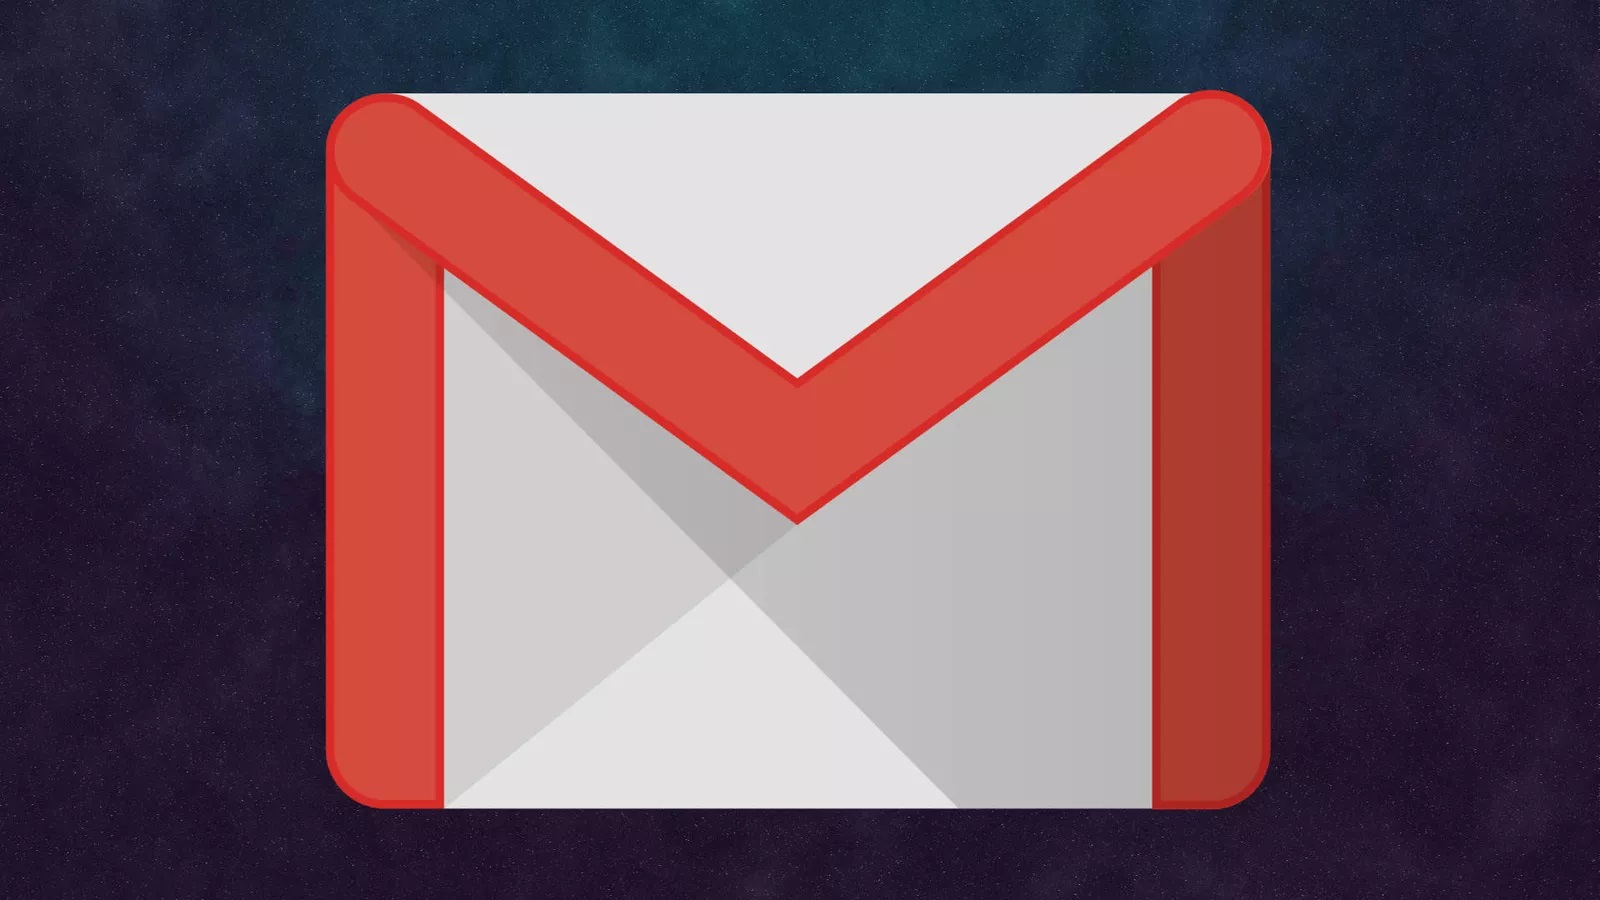 All You Need to Know About Gmail's New Design